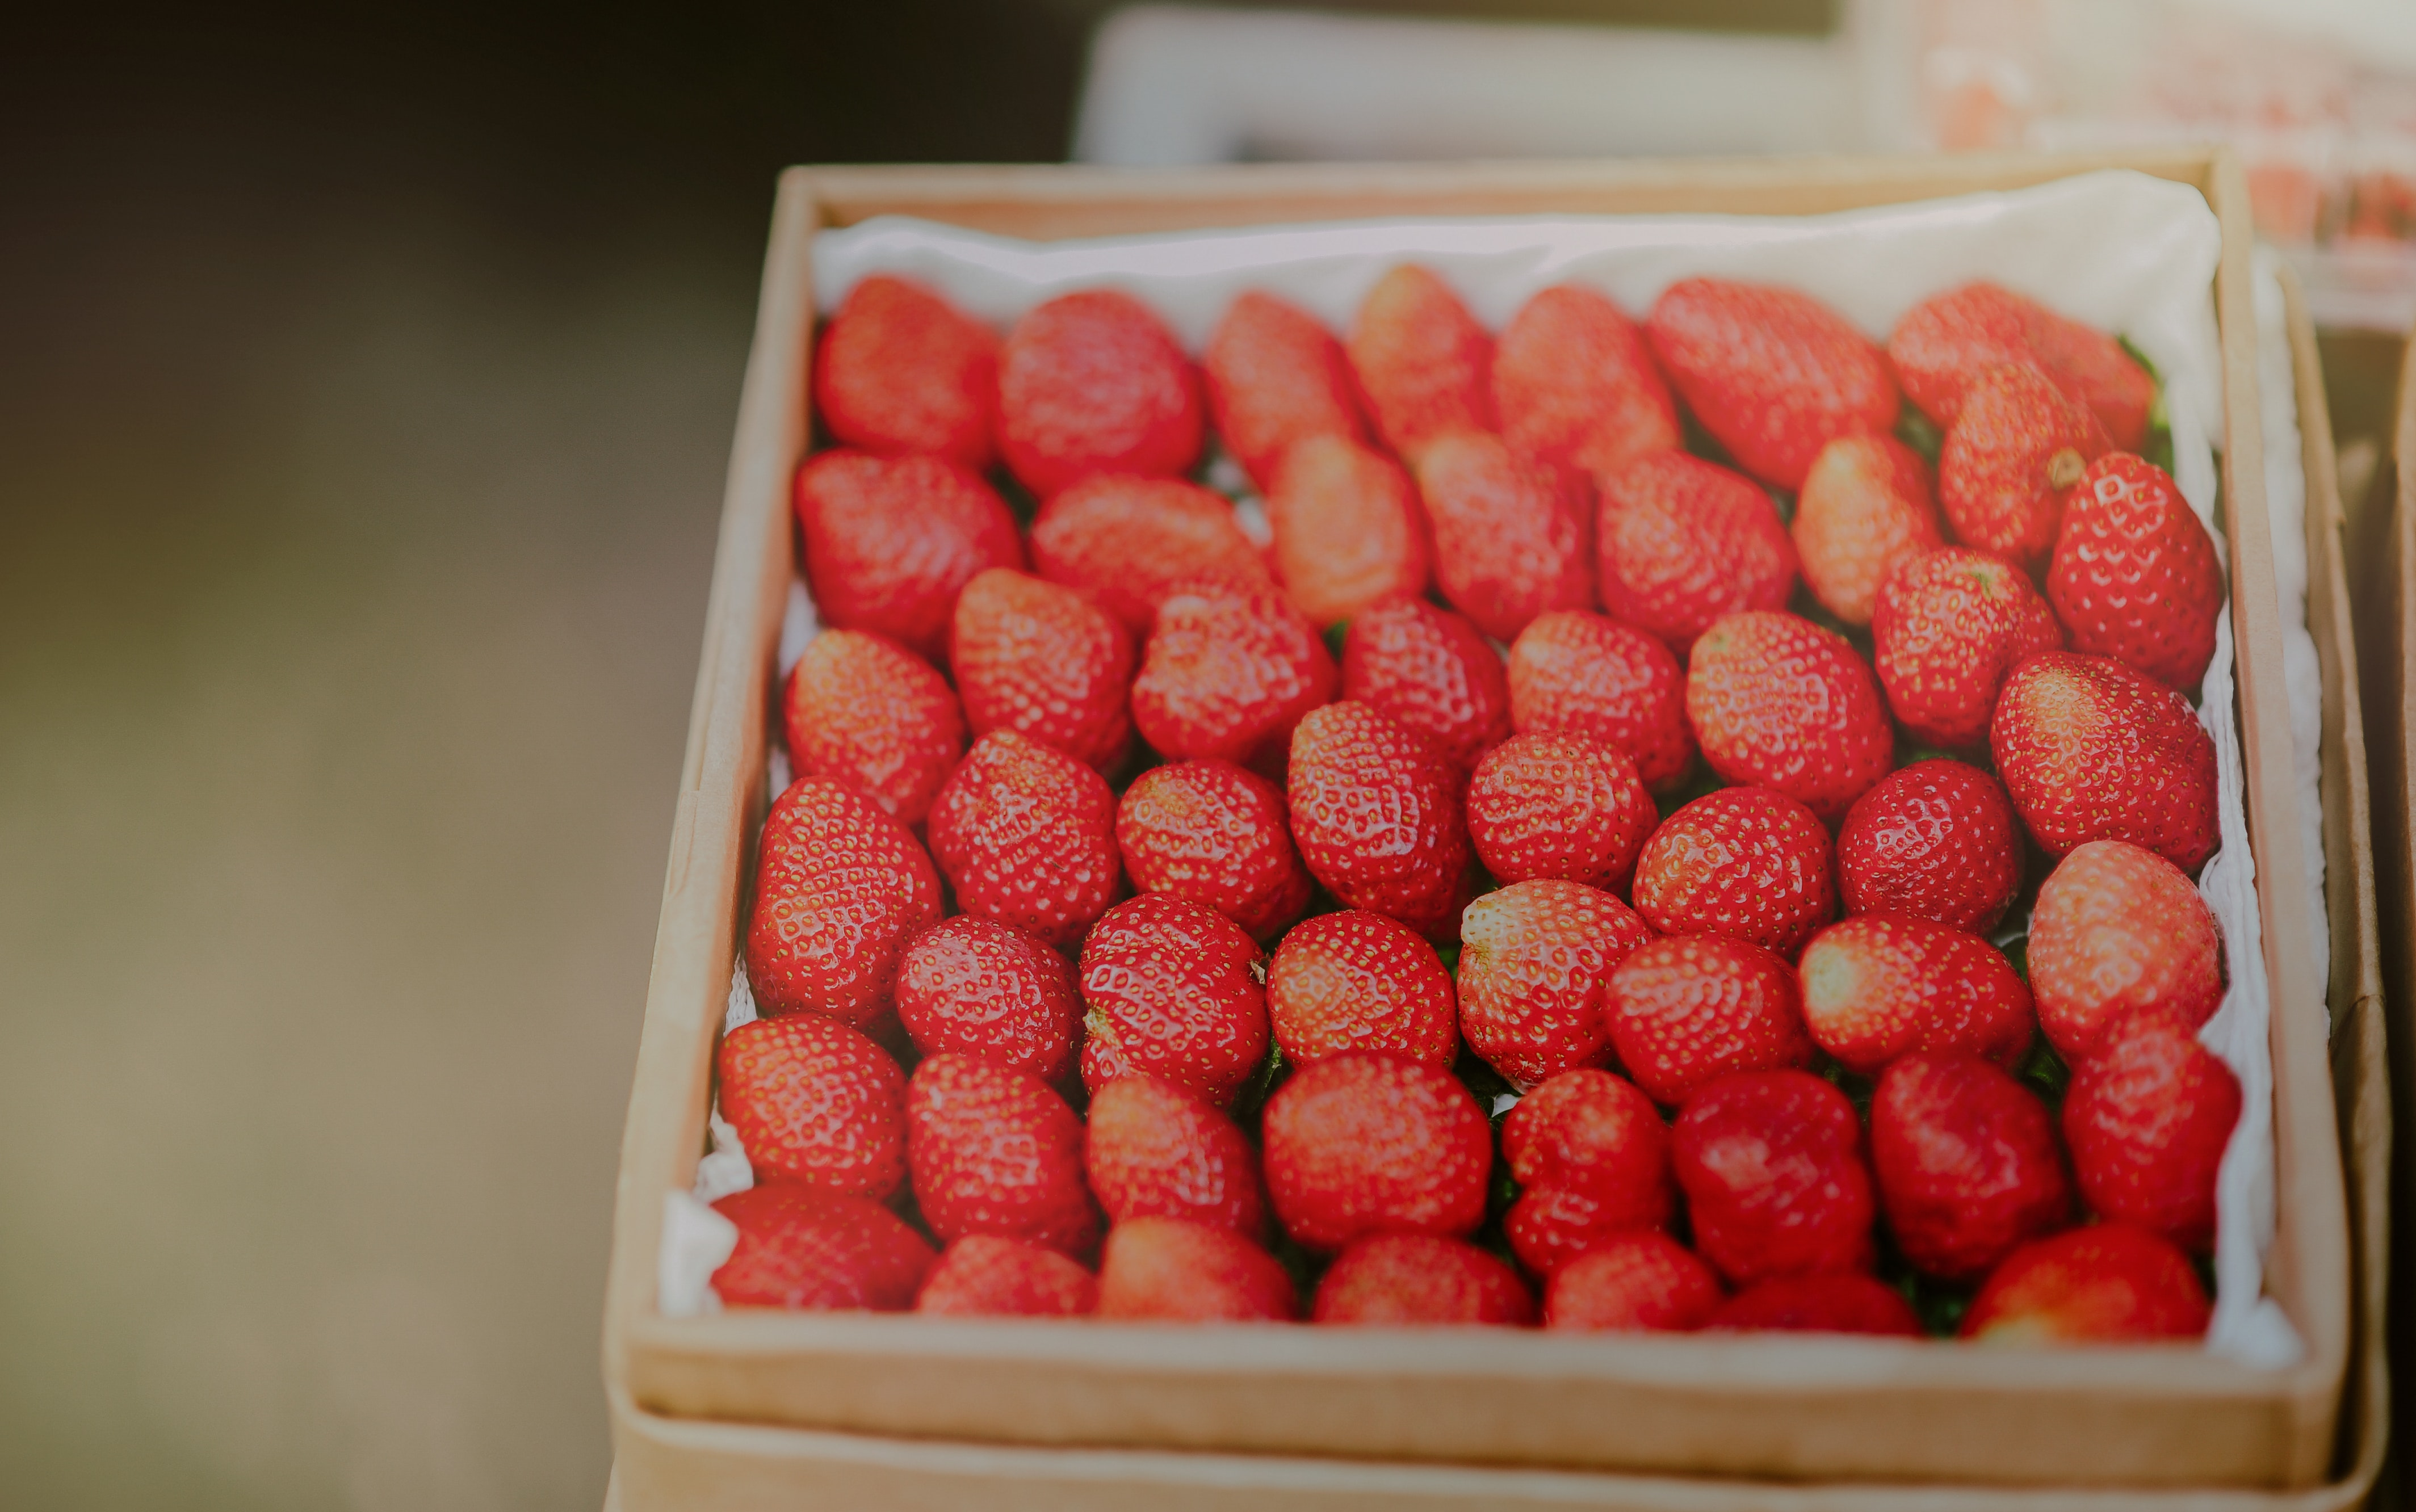 Close-up photography of stawberries